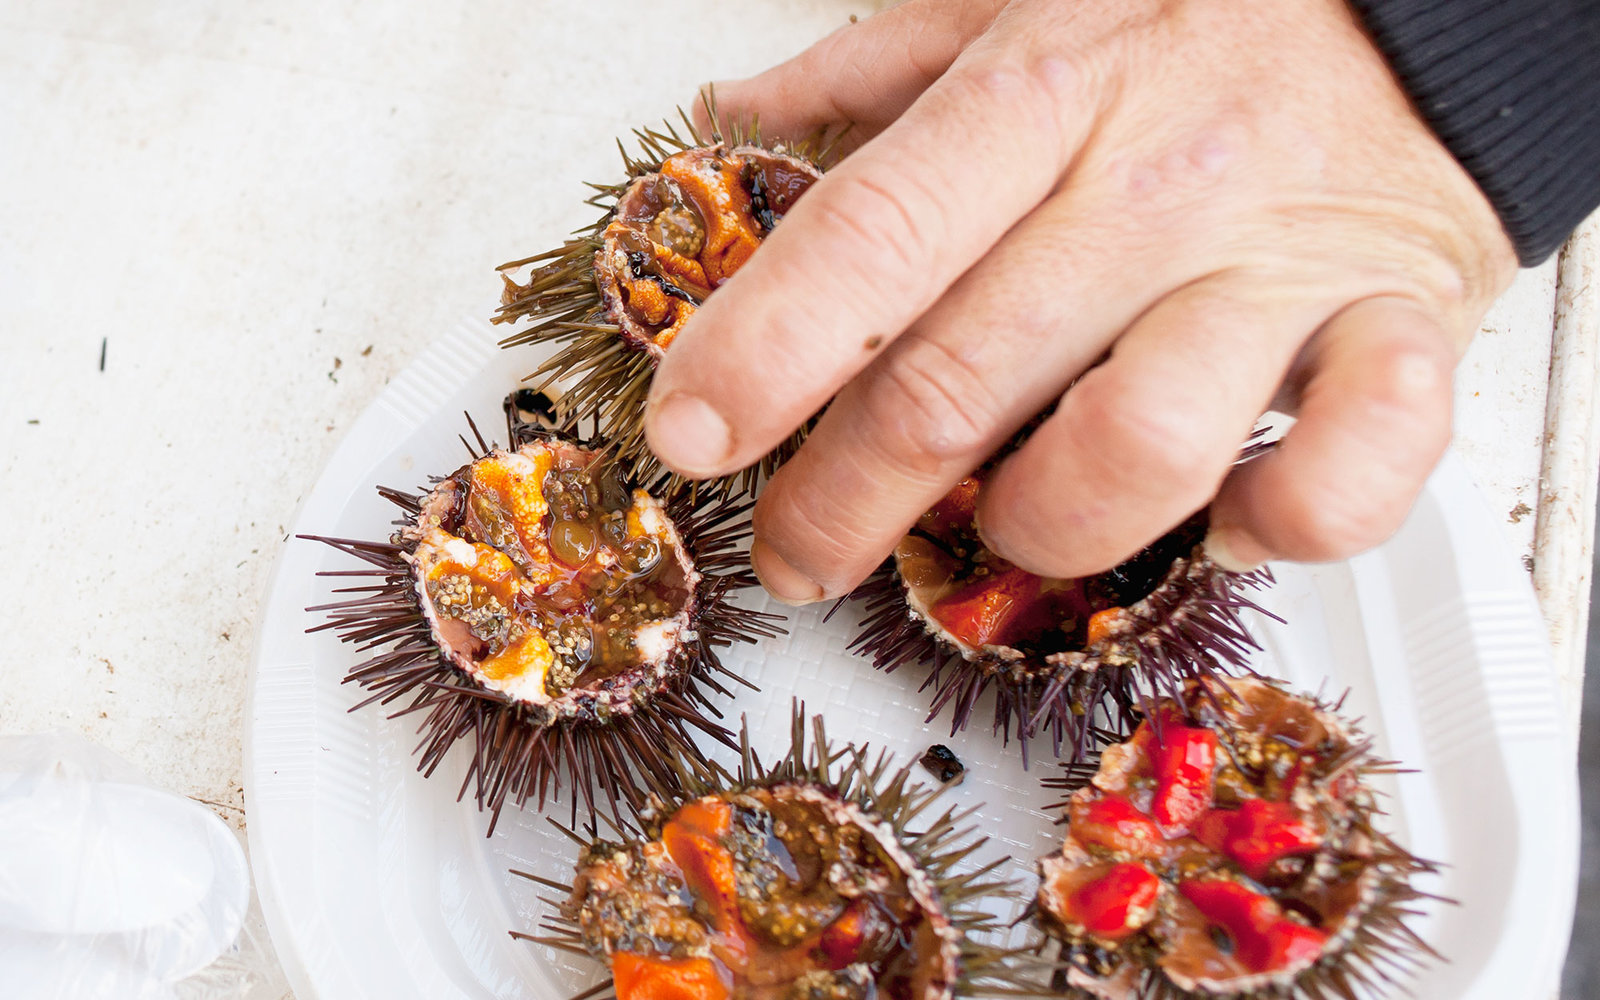 Hand putting sea urchin on plate